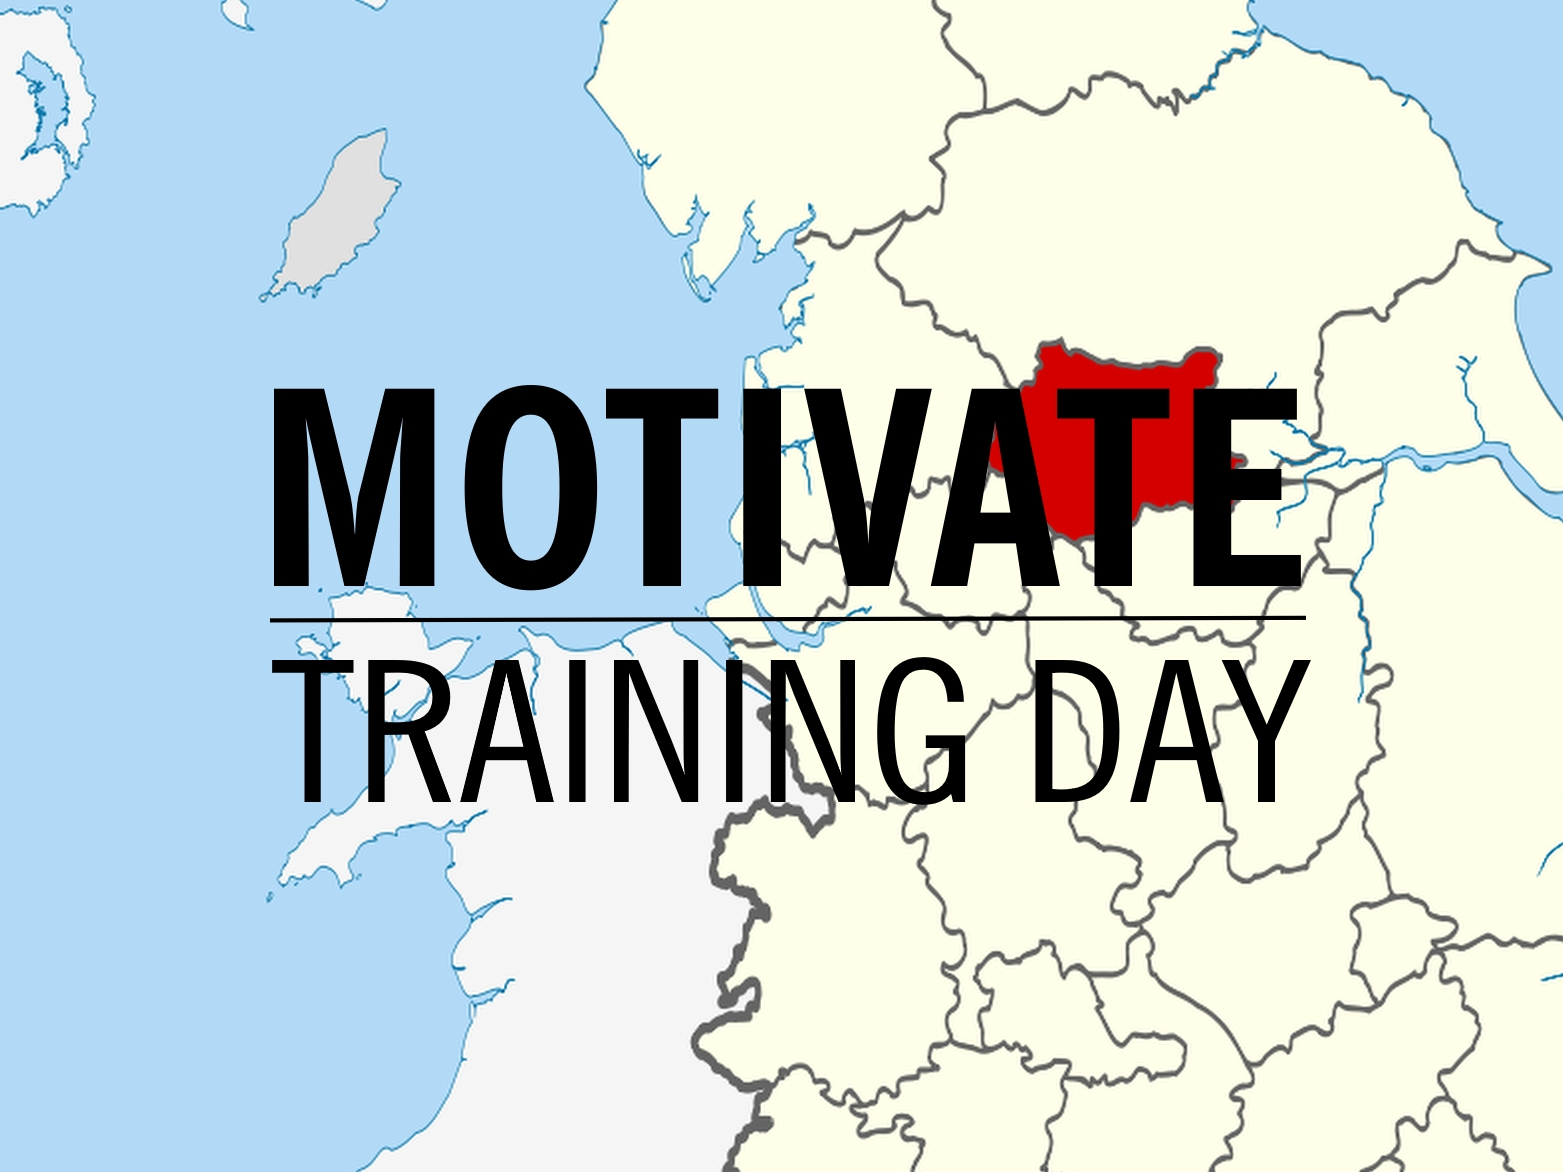 MOTIVATE: WEST YORKSHIRE 01/DEC/18